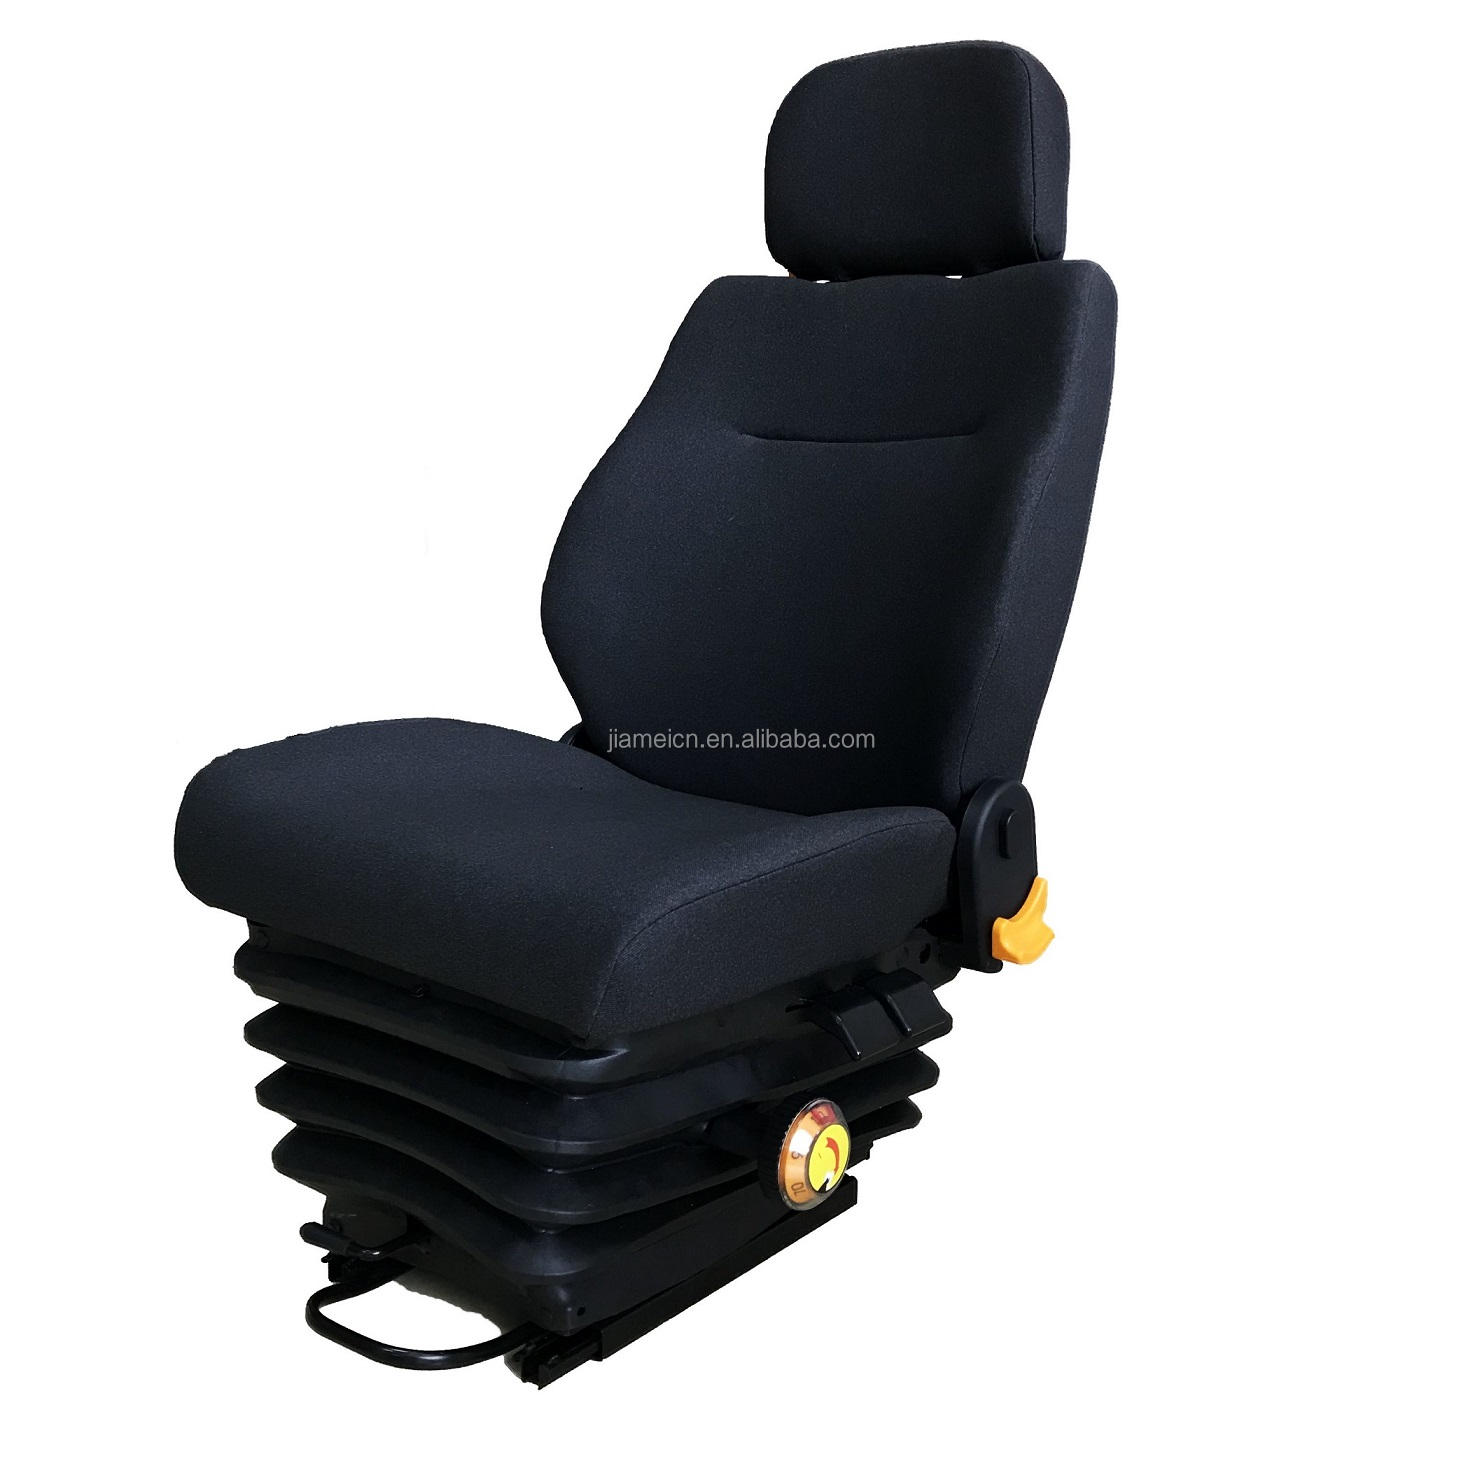 2020 new design high quality truck and bus comfortable driver seat with suspension for sale